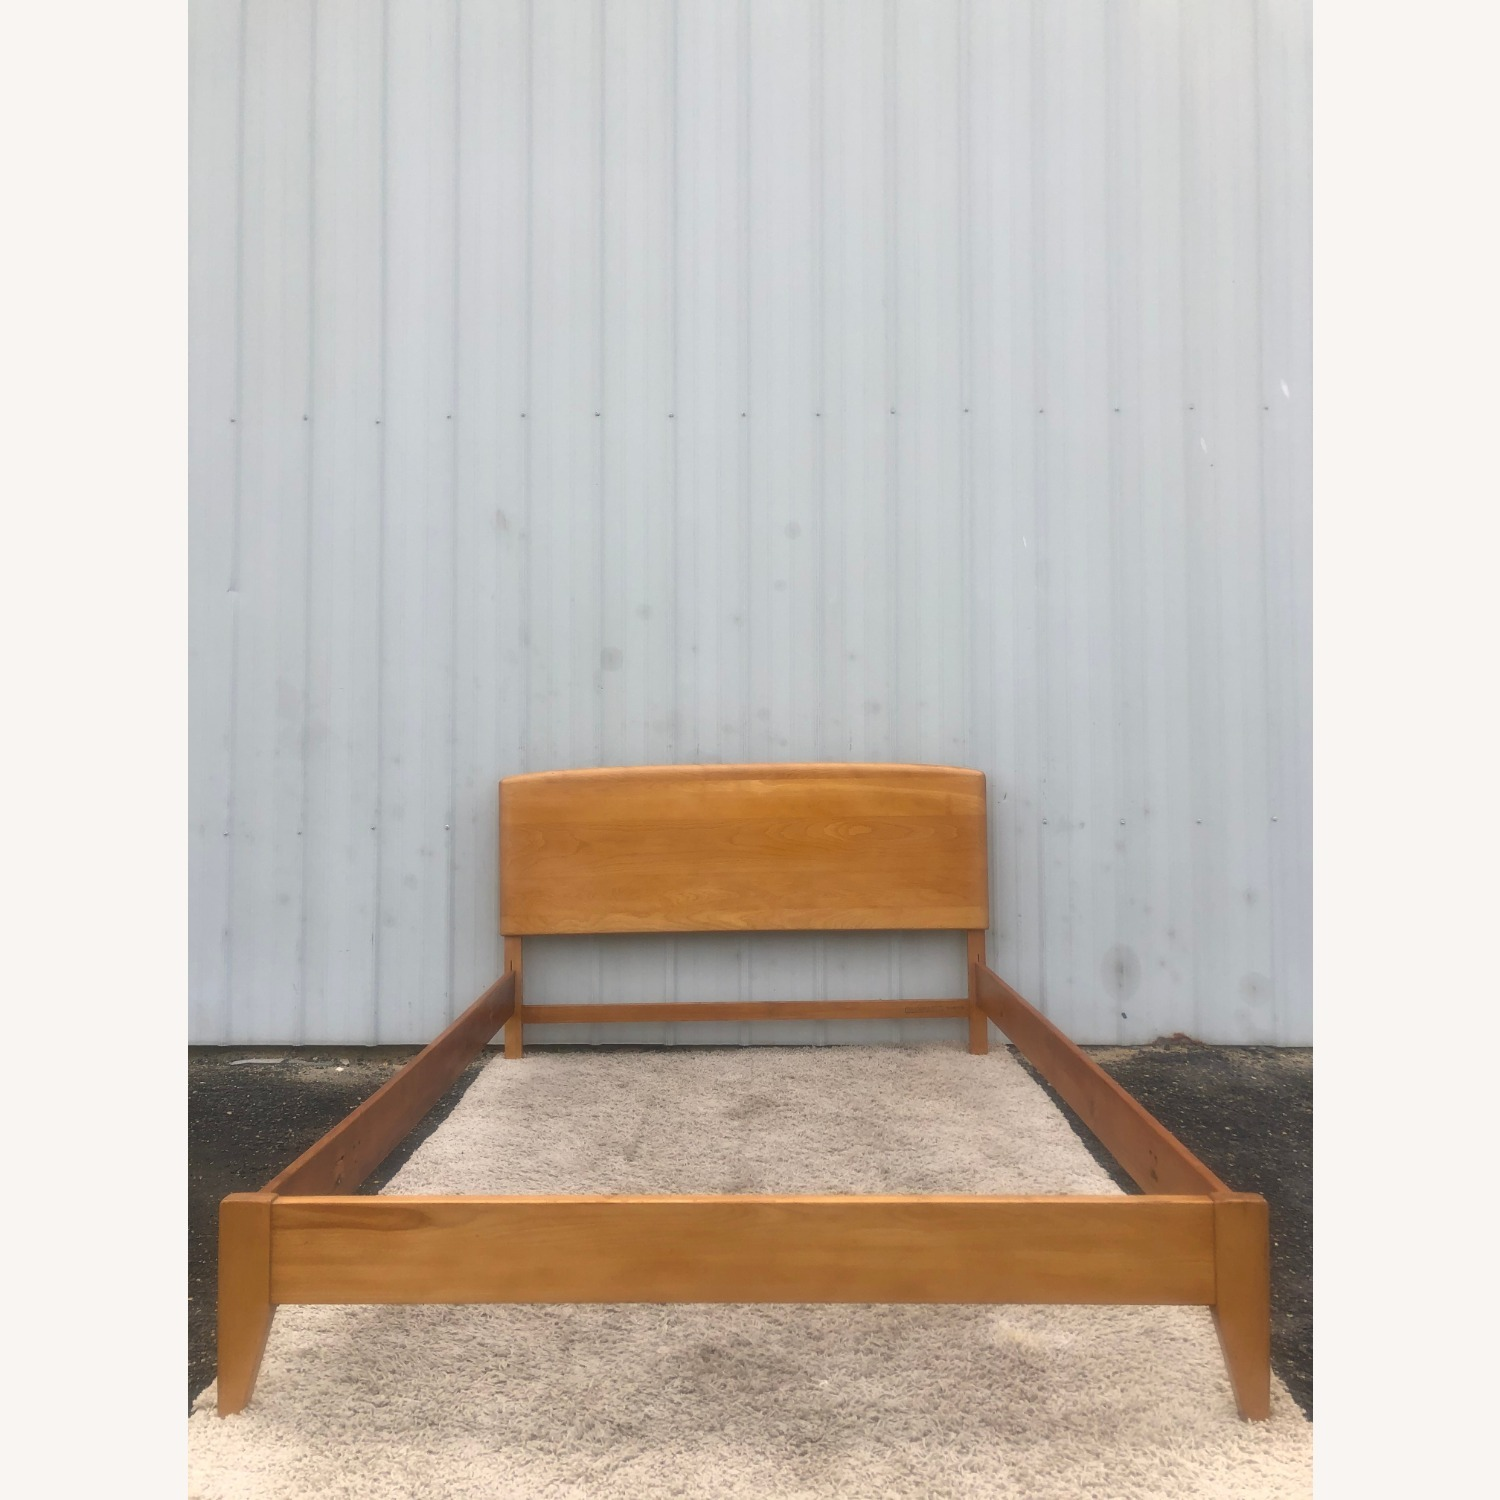 MCM Full/Double Bed Frame by Heywood Wakefield - image-1